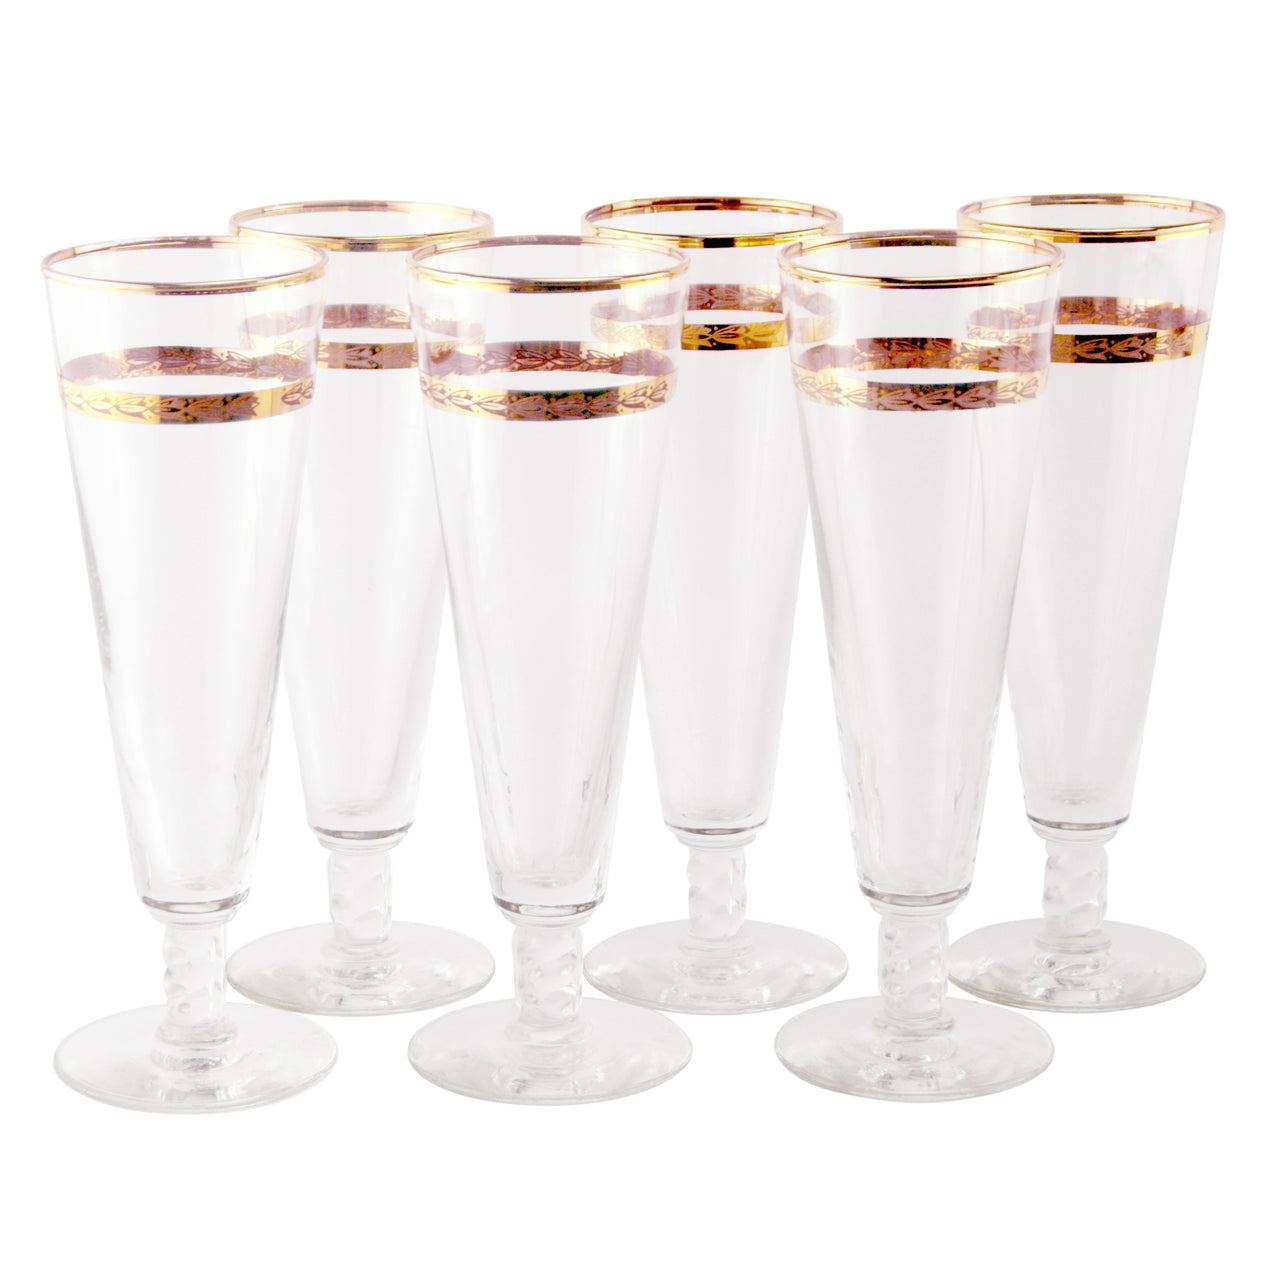 Libbey Gold Band Pilsner Glasses | The Hour Shop Vintage